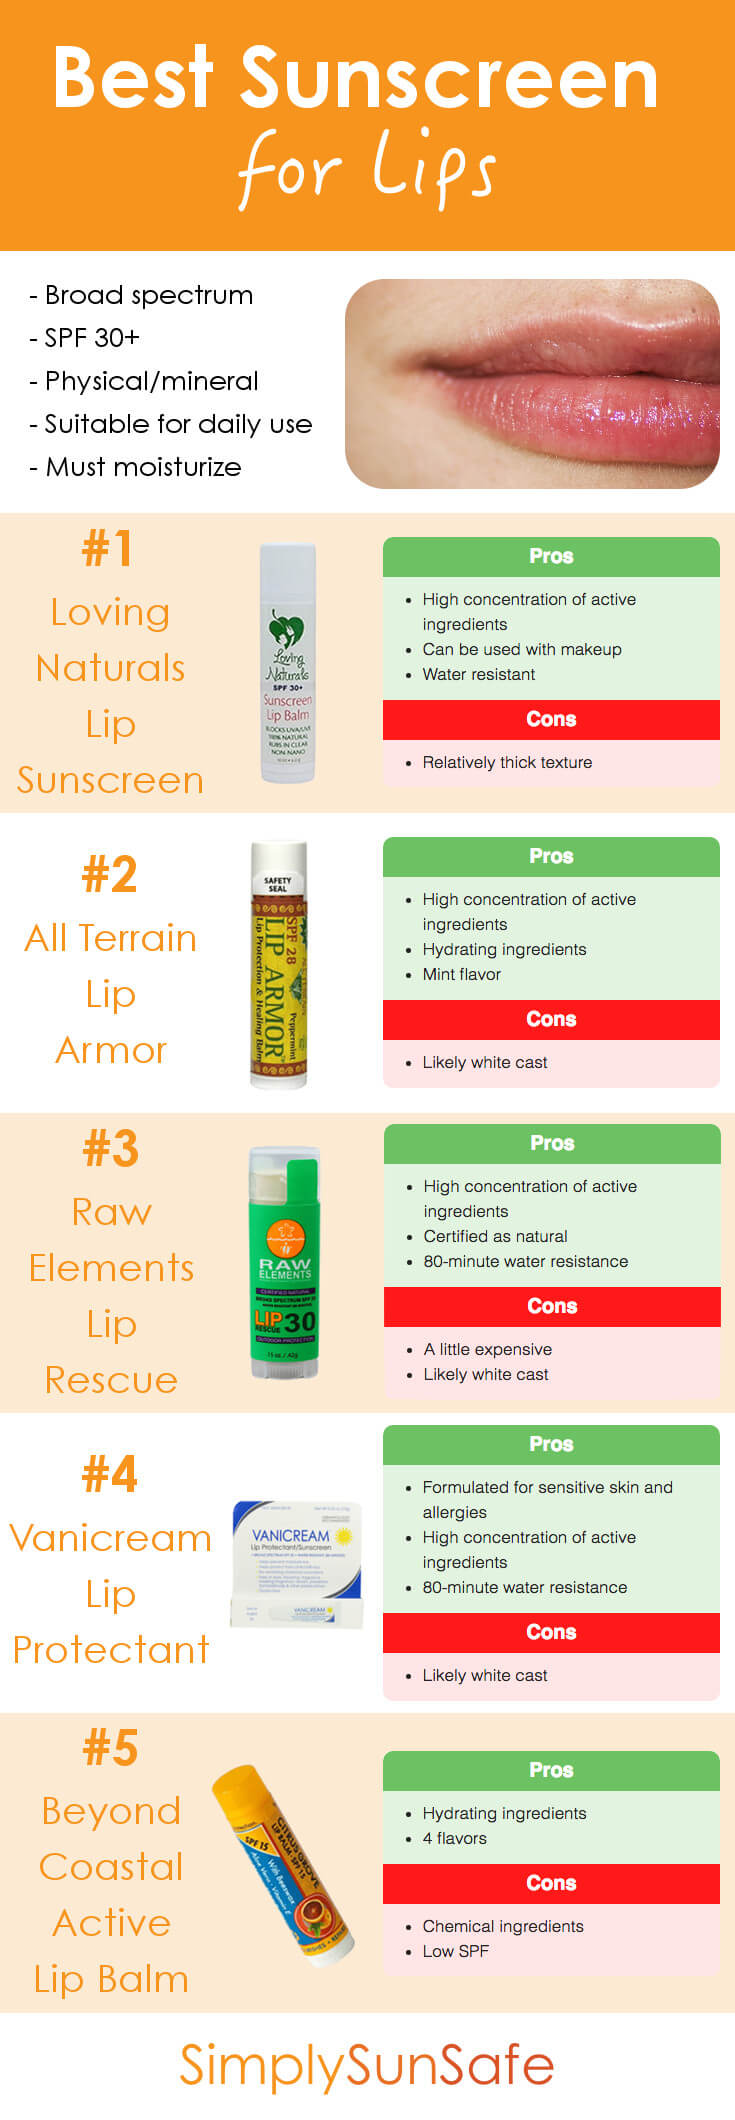 Best Sunscreen for Lips Pinterest